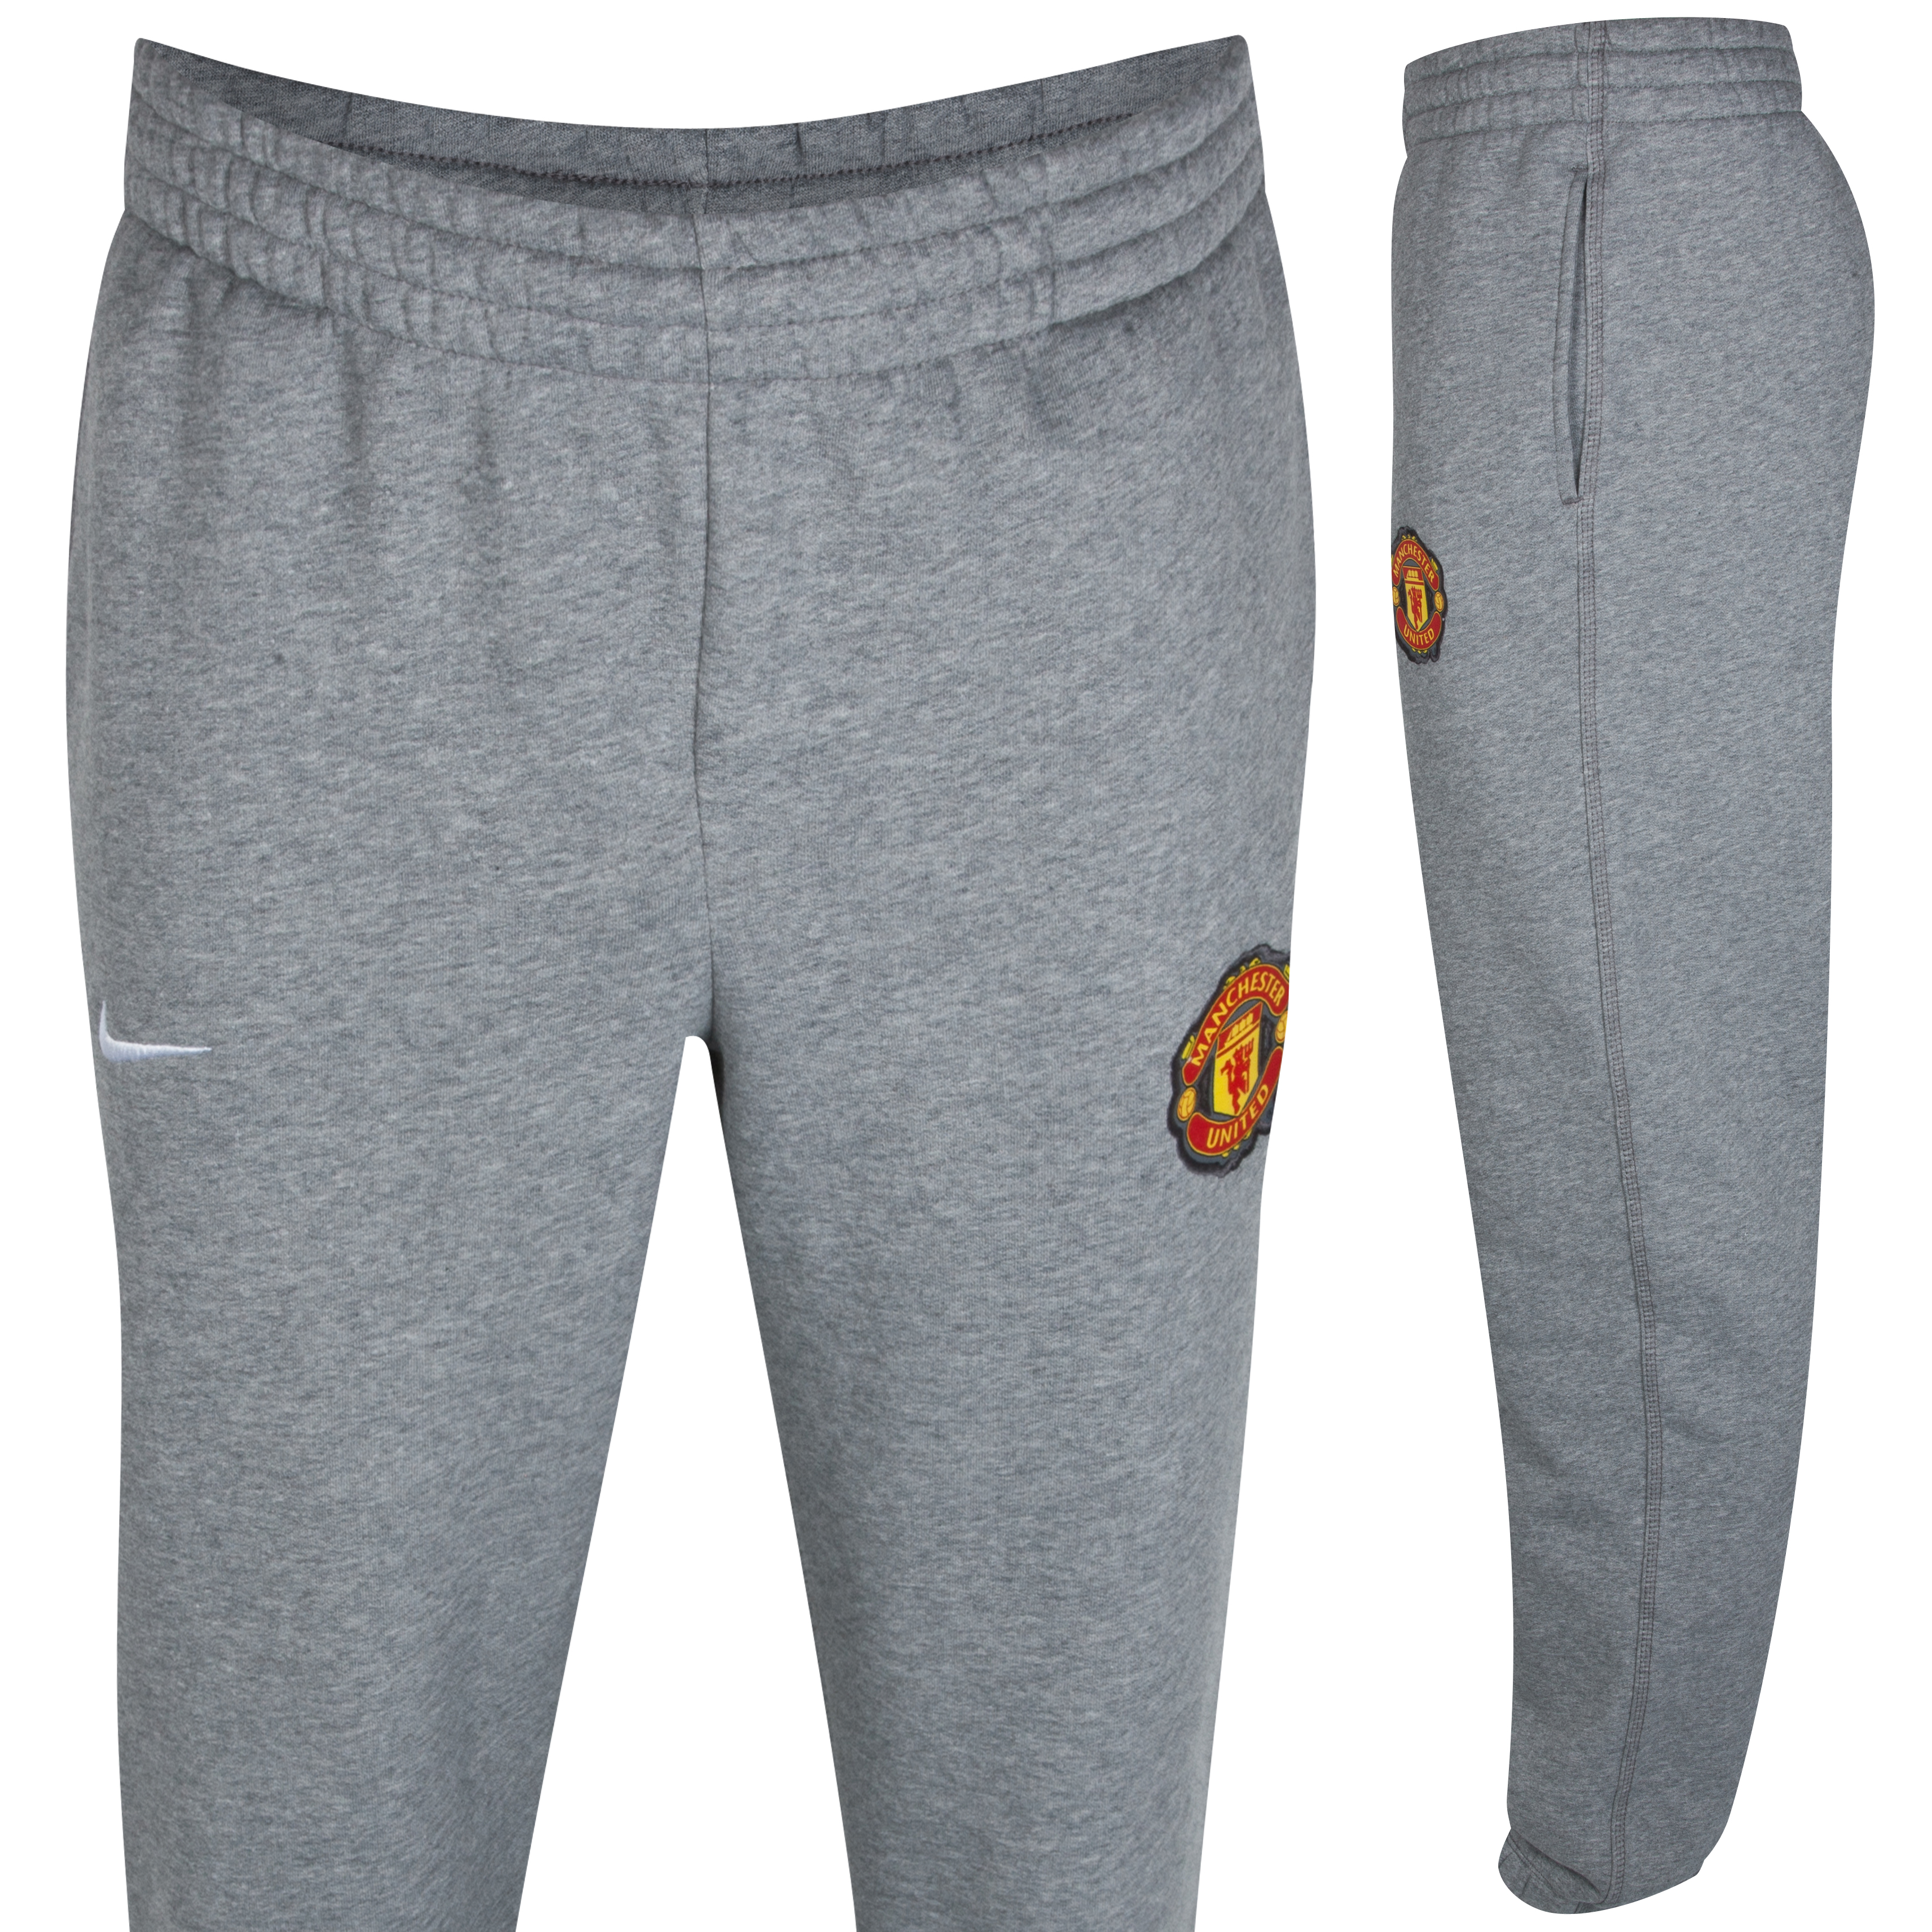 Manchester United Core Fleece Cuff Pant - Carbon Heather/White